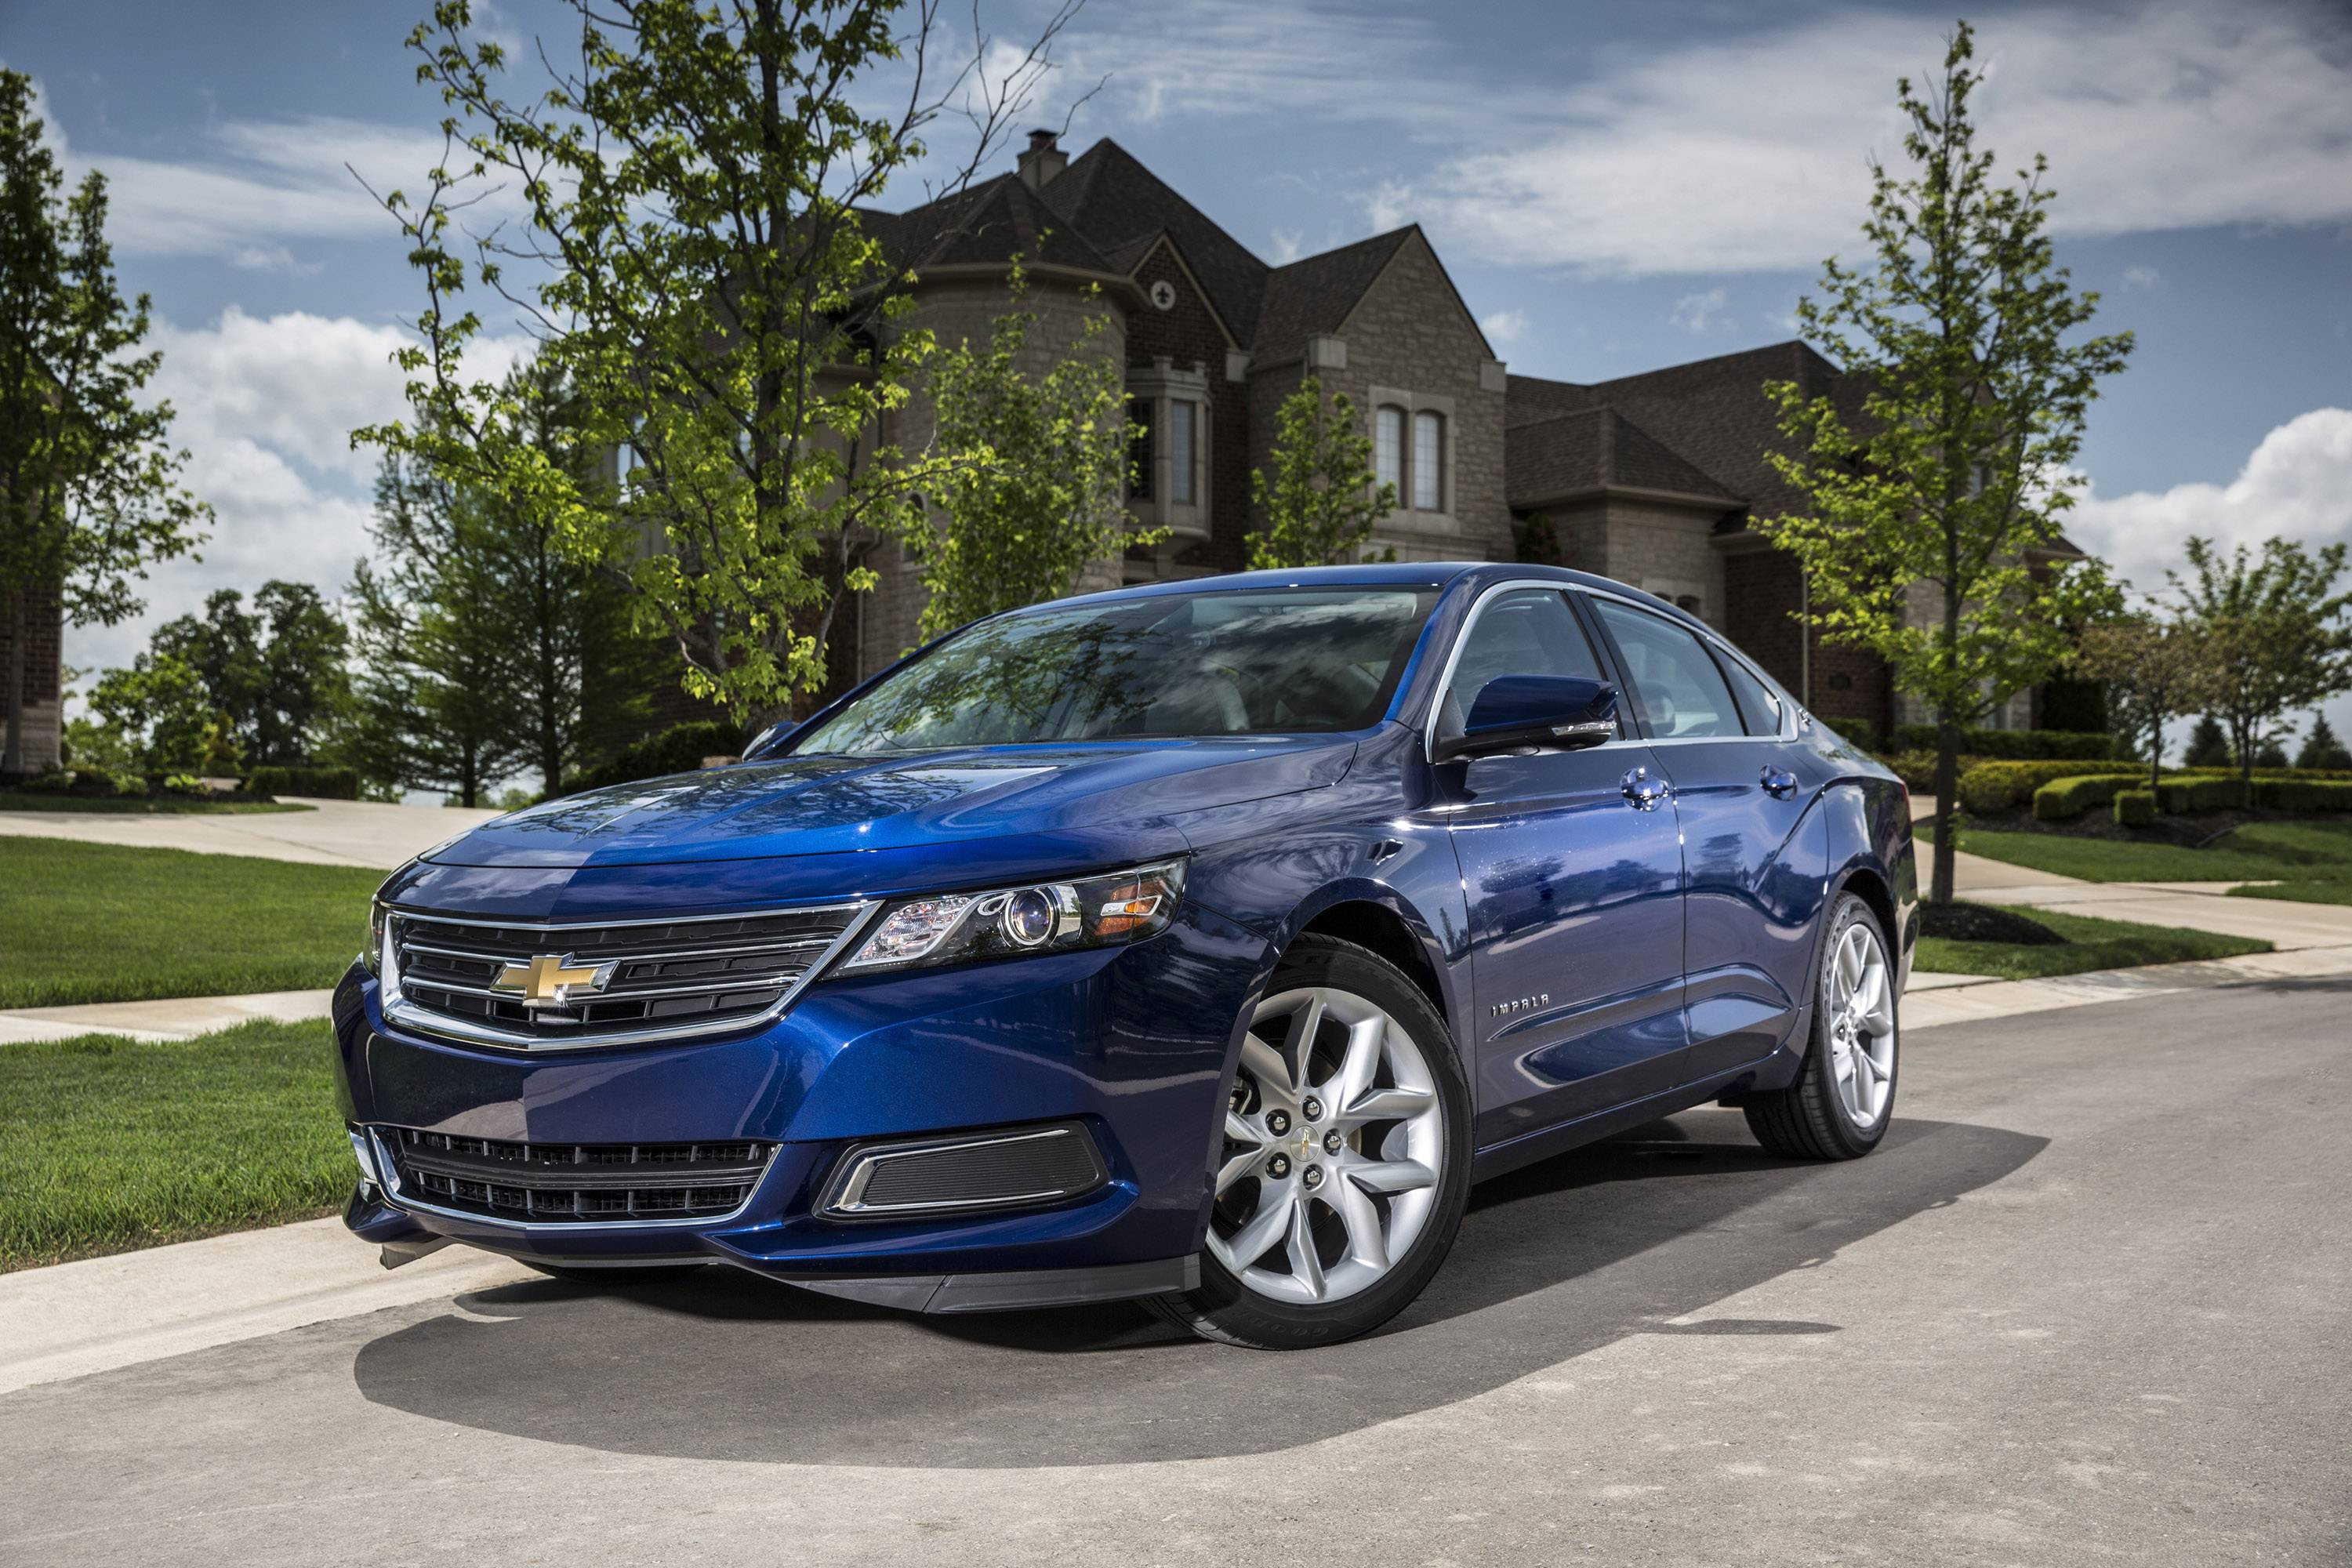 The 2014 Chevrolet Impala was the only non-luxury car to earn the highest safety rating in new tests of high-tech crash prevention systems.